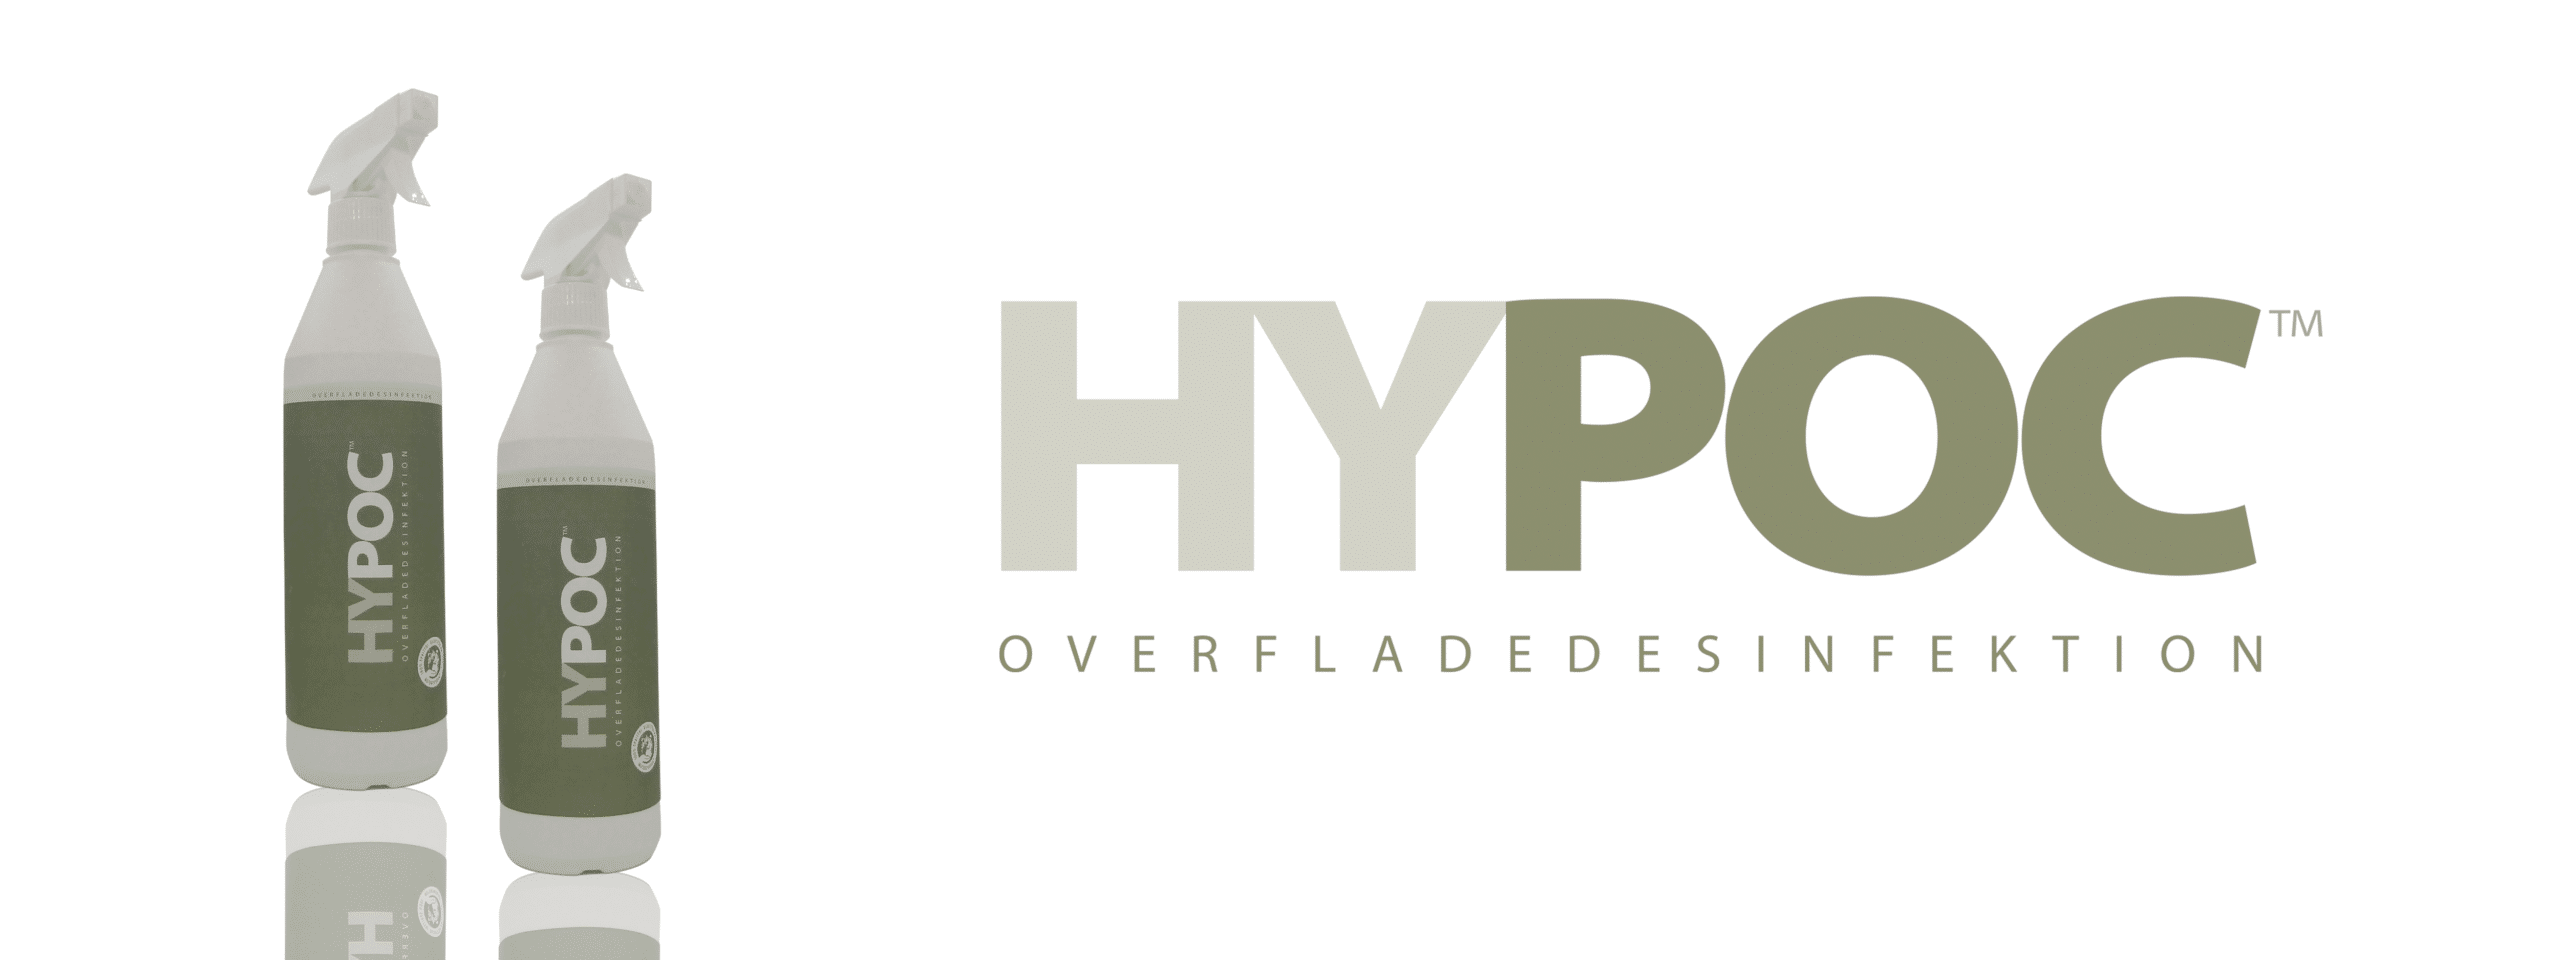 Hypoc Overfladedesinfektion web banner 1200x450